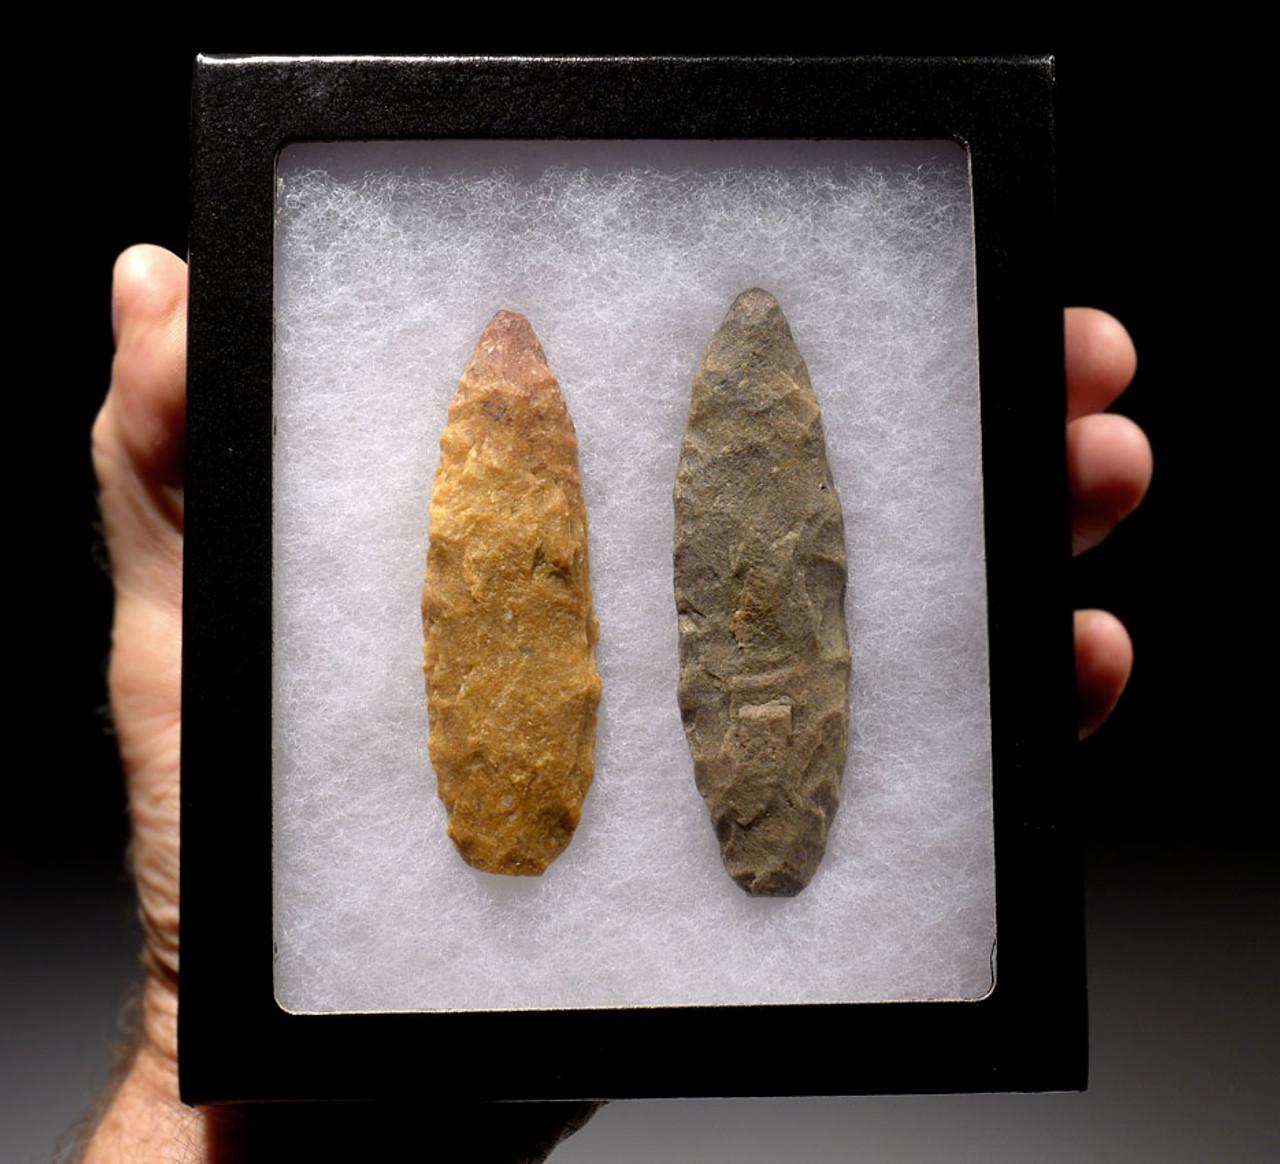 CAP198 - PAIR OF LARGE TENERIAN AFRICAN NEOLITHIC BIFACIAL SPEARHEADS FROM THE PEOPLE OF THE GREEN SAHARA